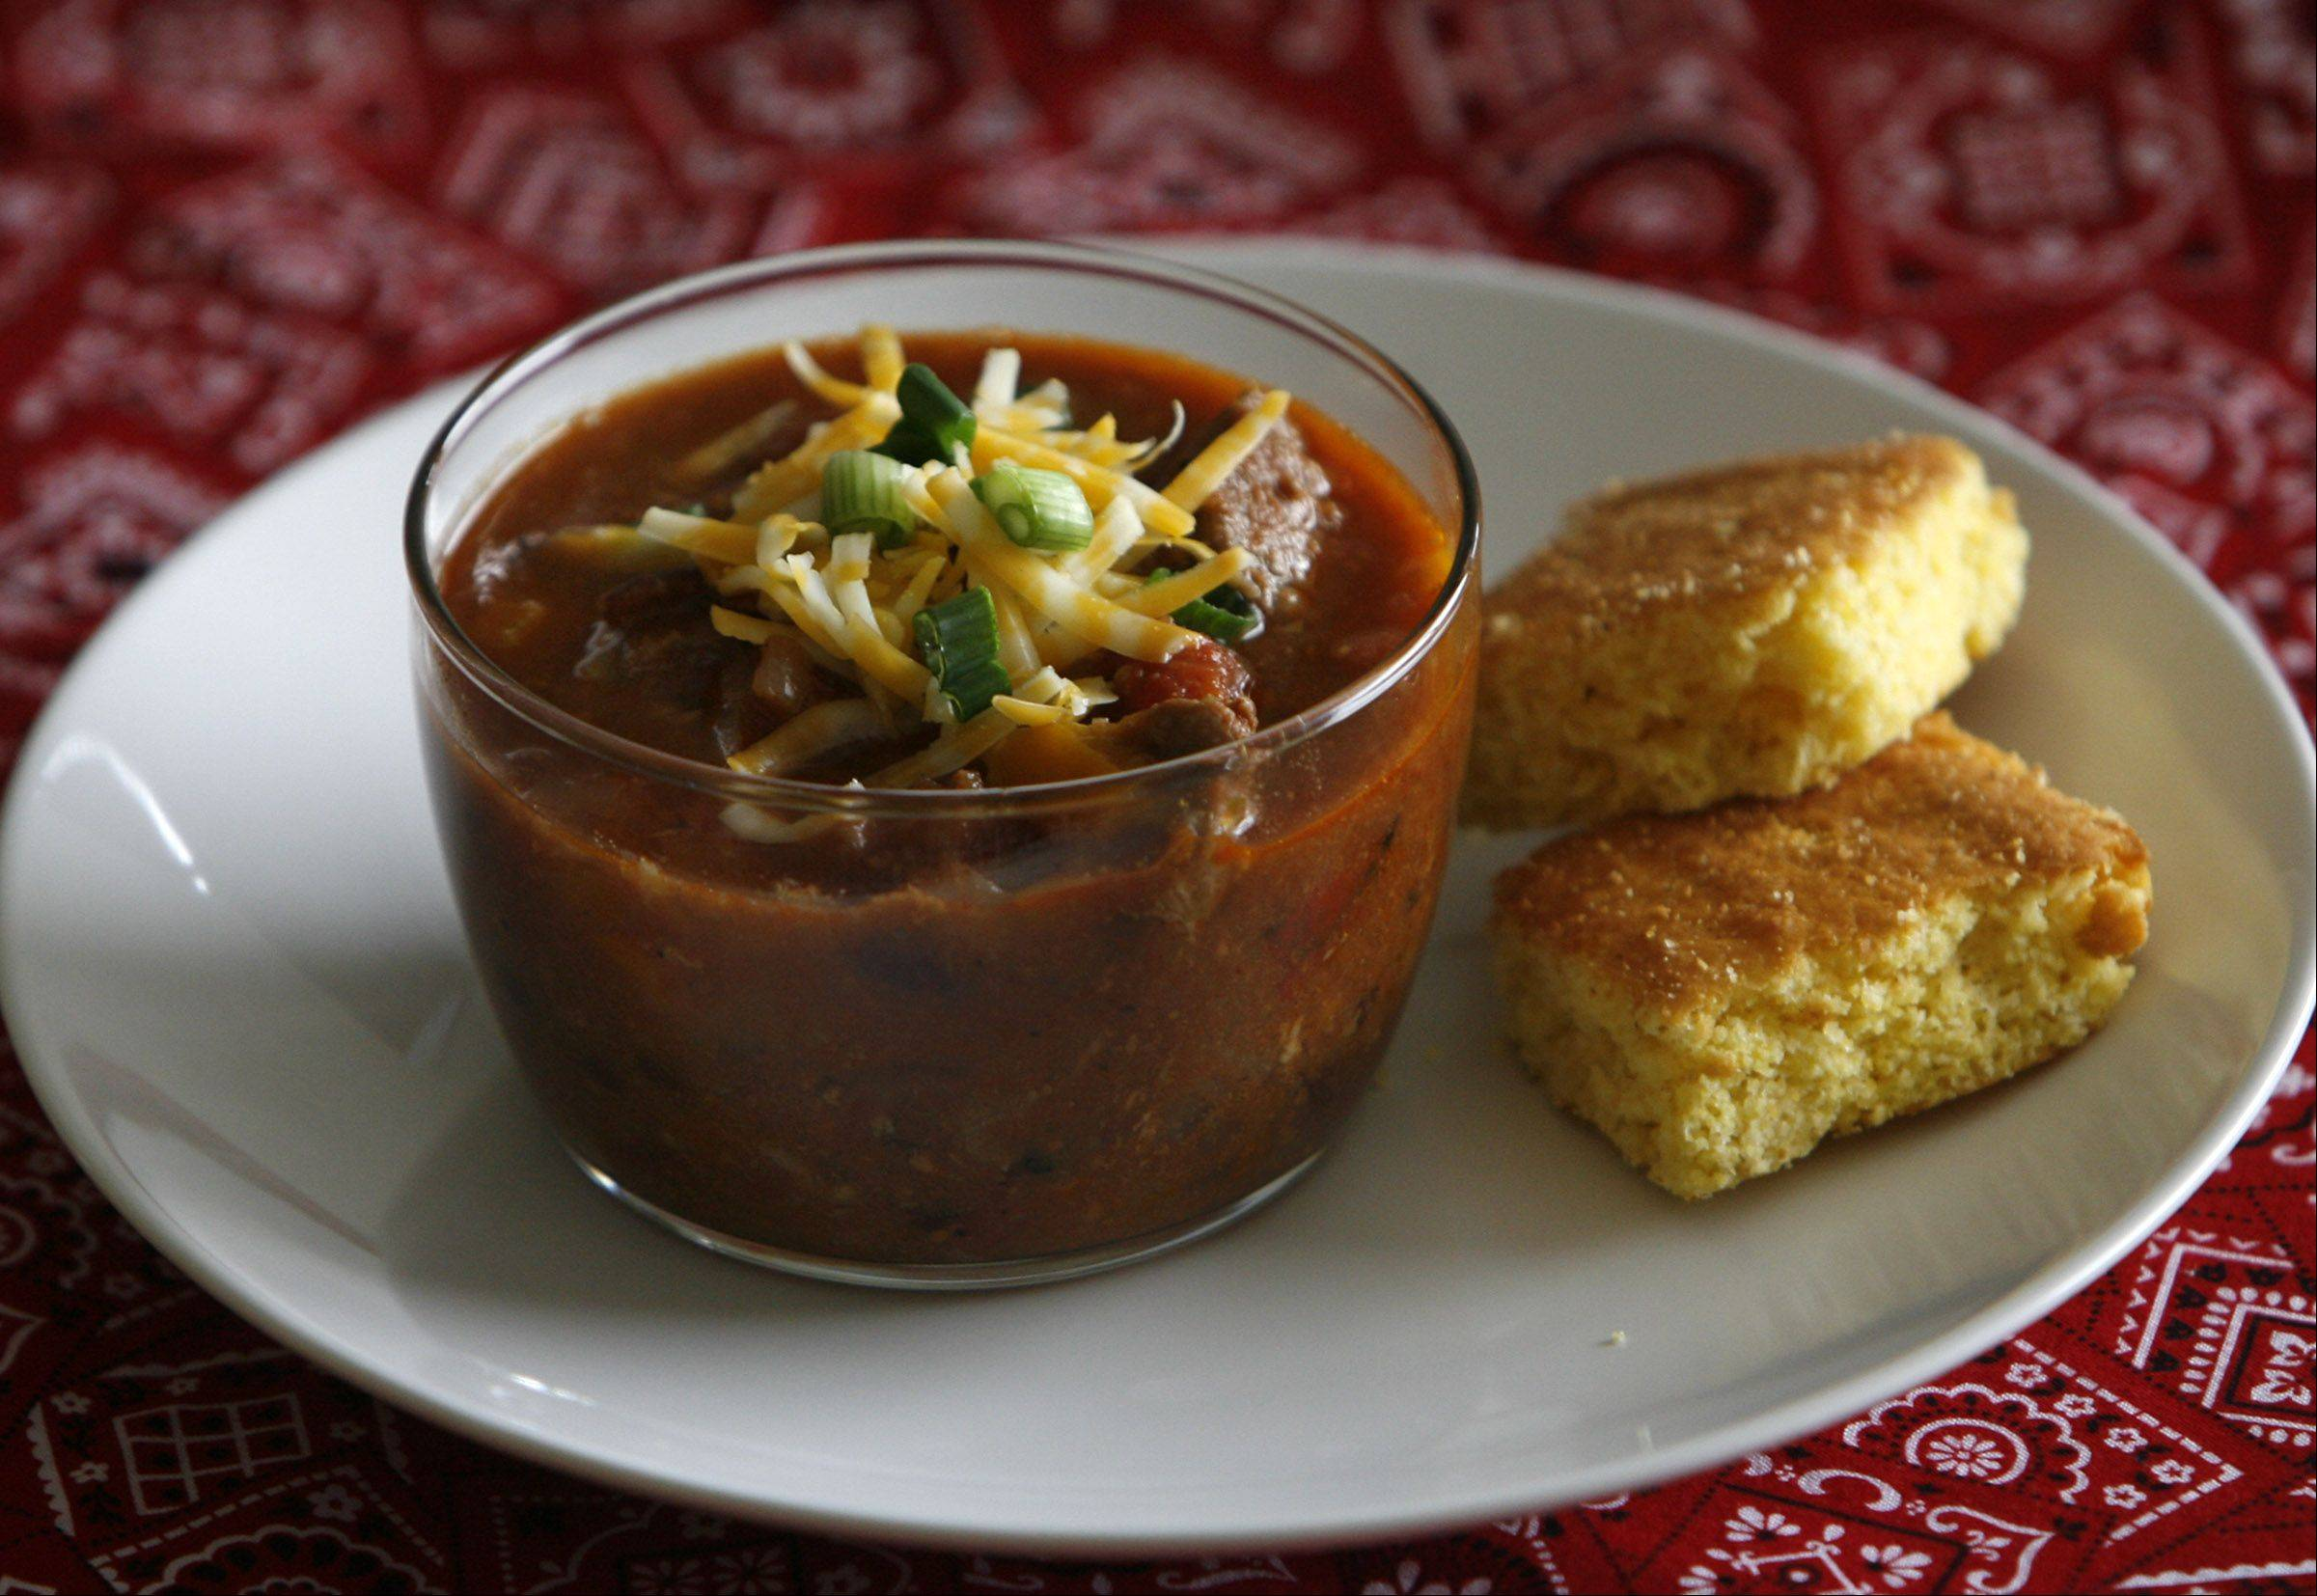 George LeclaireChorizo, beef and black beans give plenty of protein to this chili, a perfect way to warm up on a cold February day.